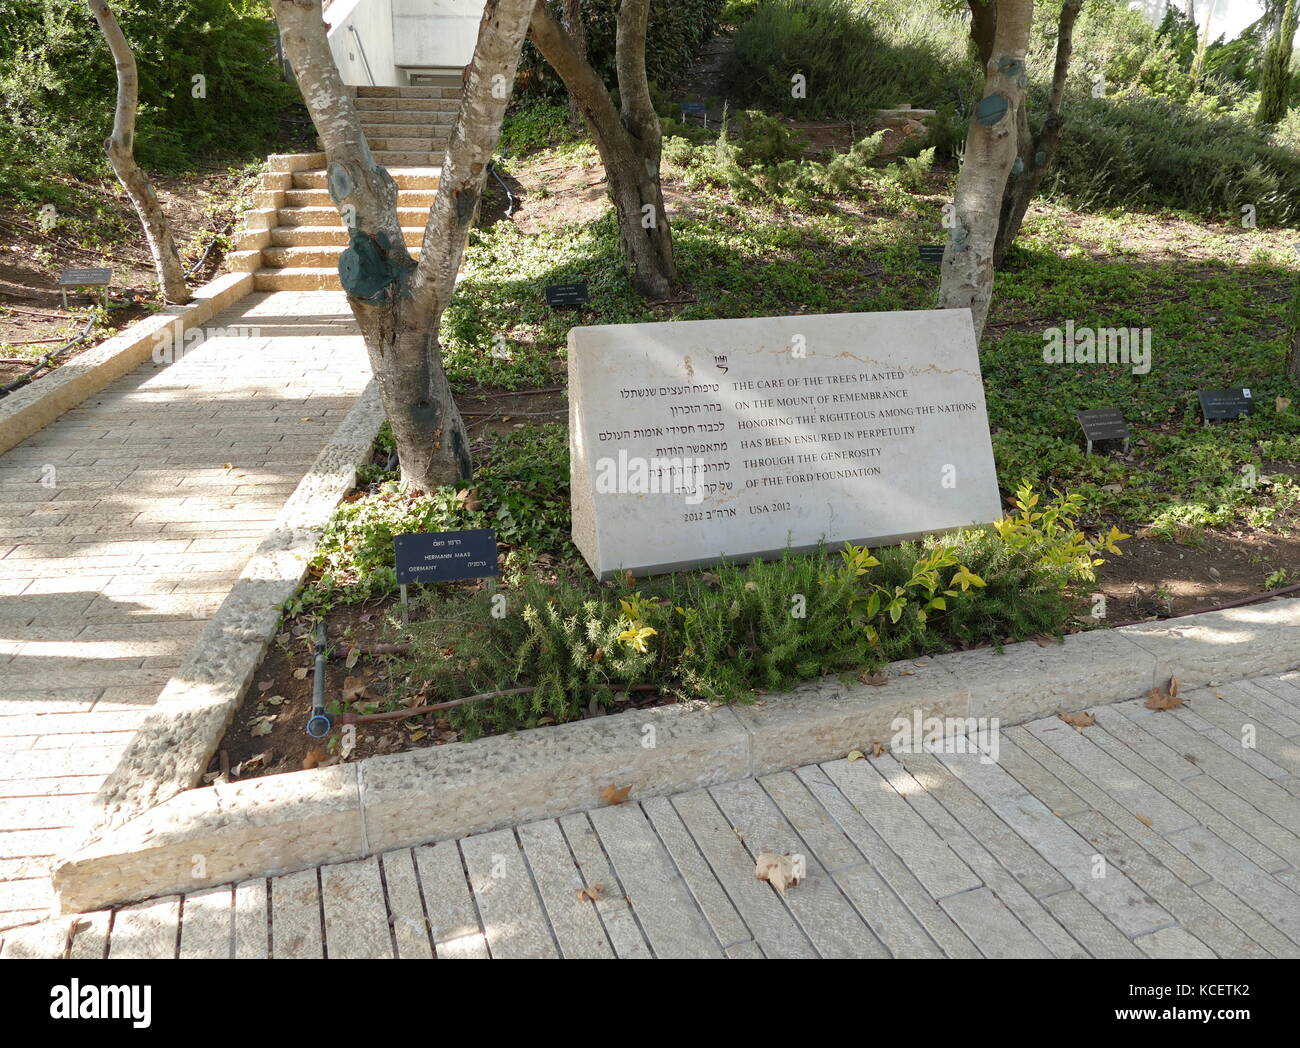 Ford Foundation Memorial In The Avenue Of The Righteous Among The Nations Yad Vashem